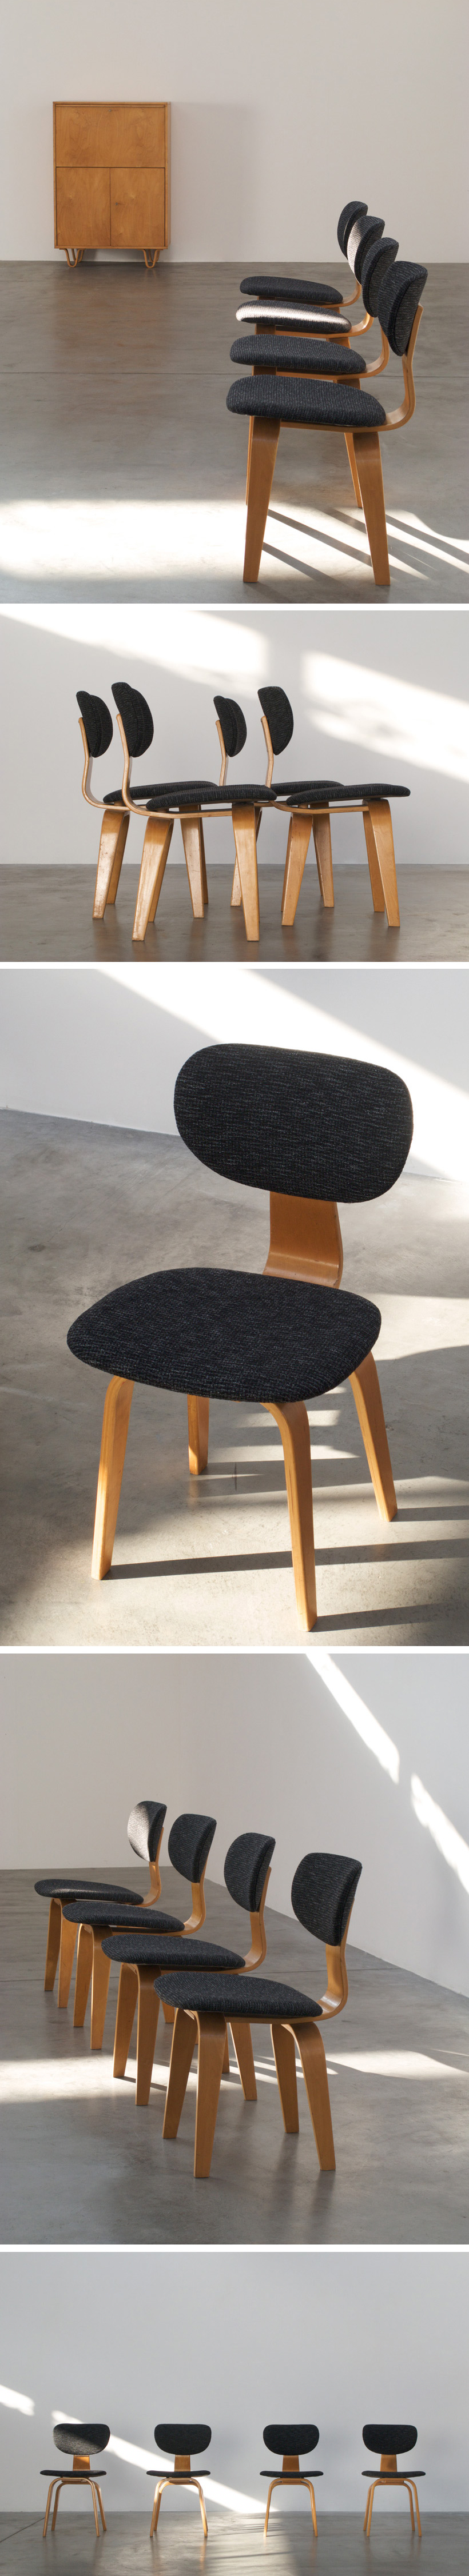 4 Cees Braakman SB03 dinning chairs Combex series Large